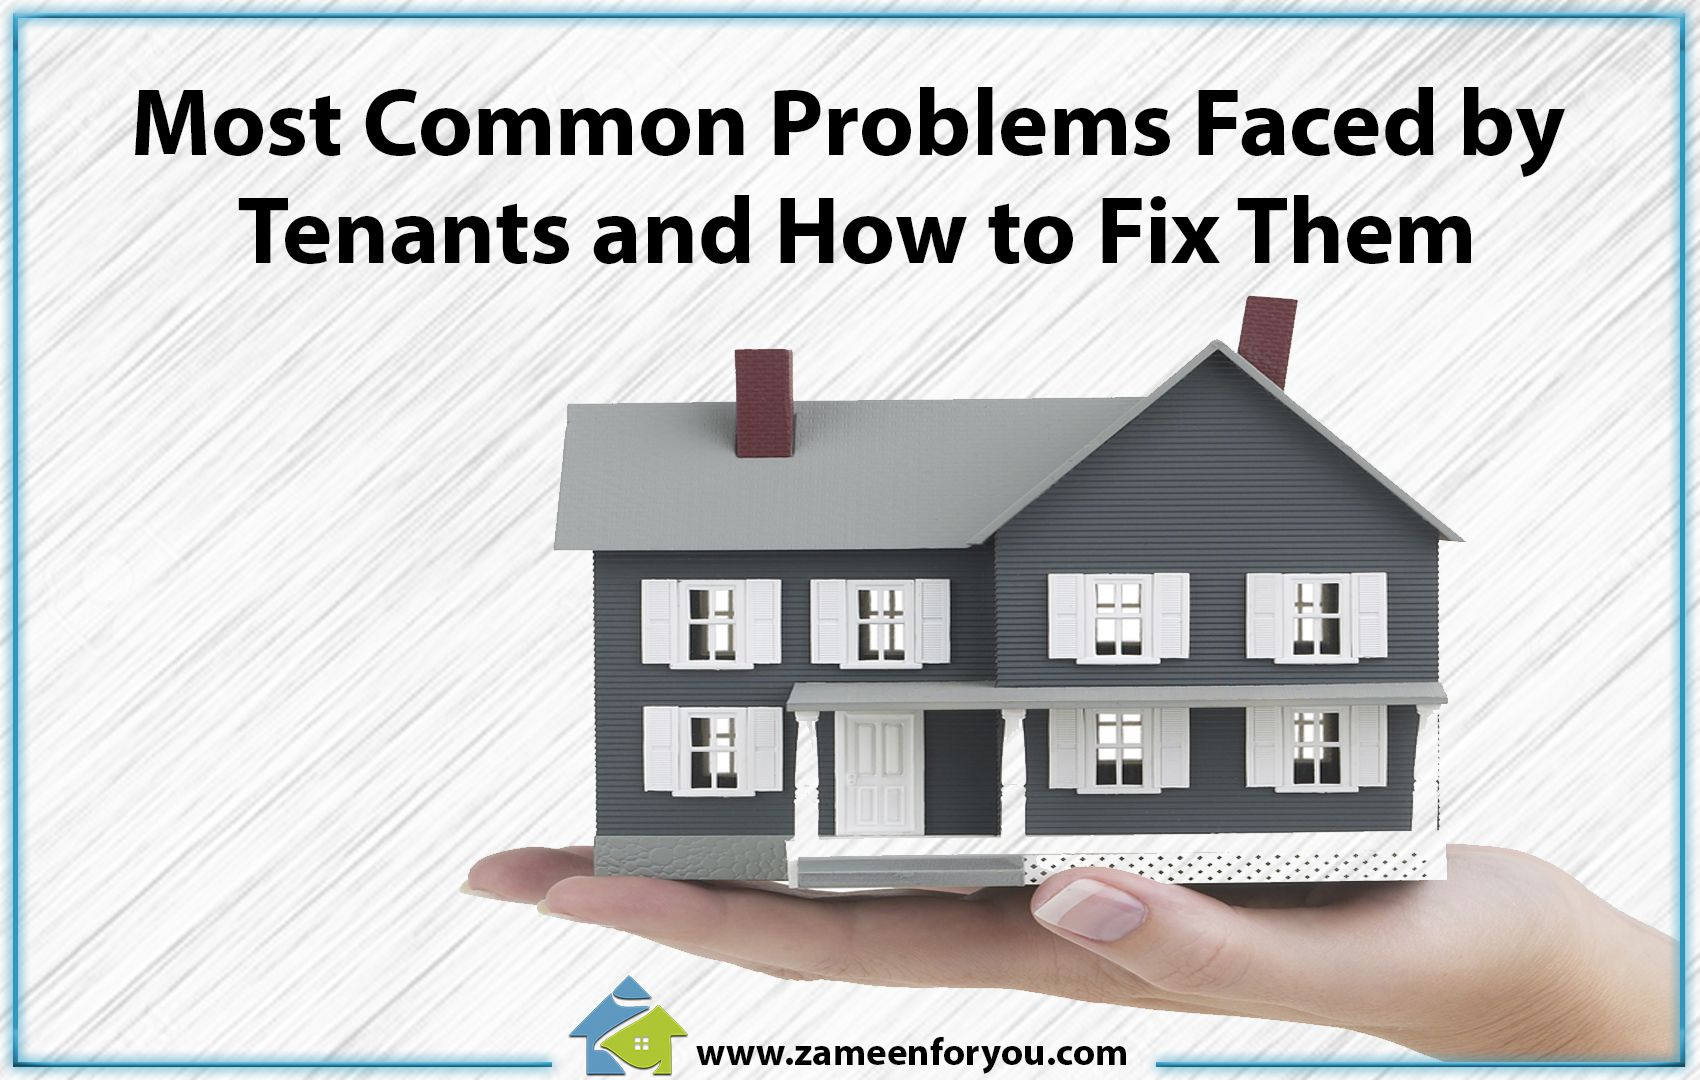 Most Common Problems Faced By Tenants And How To Fix Them Being